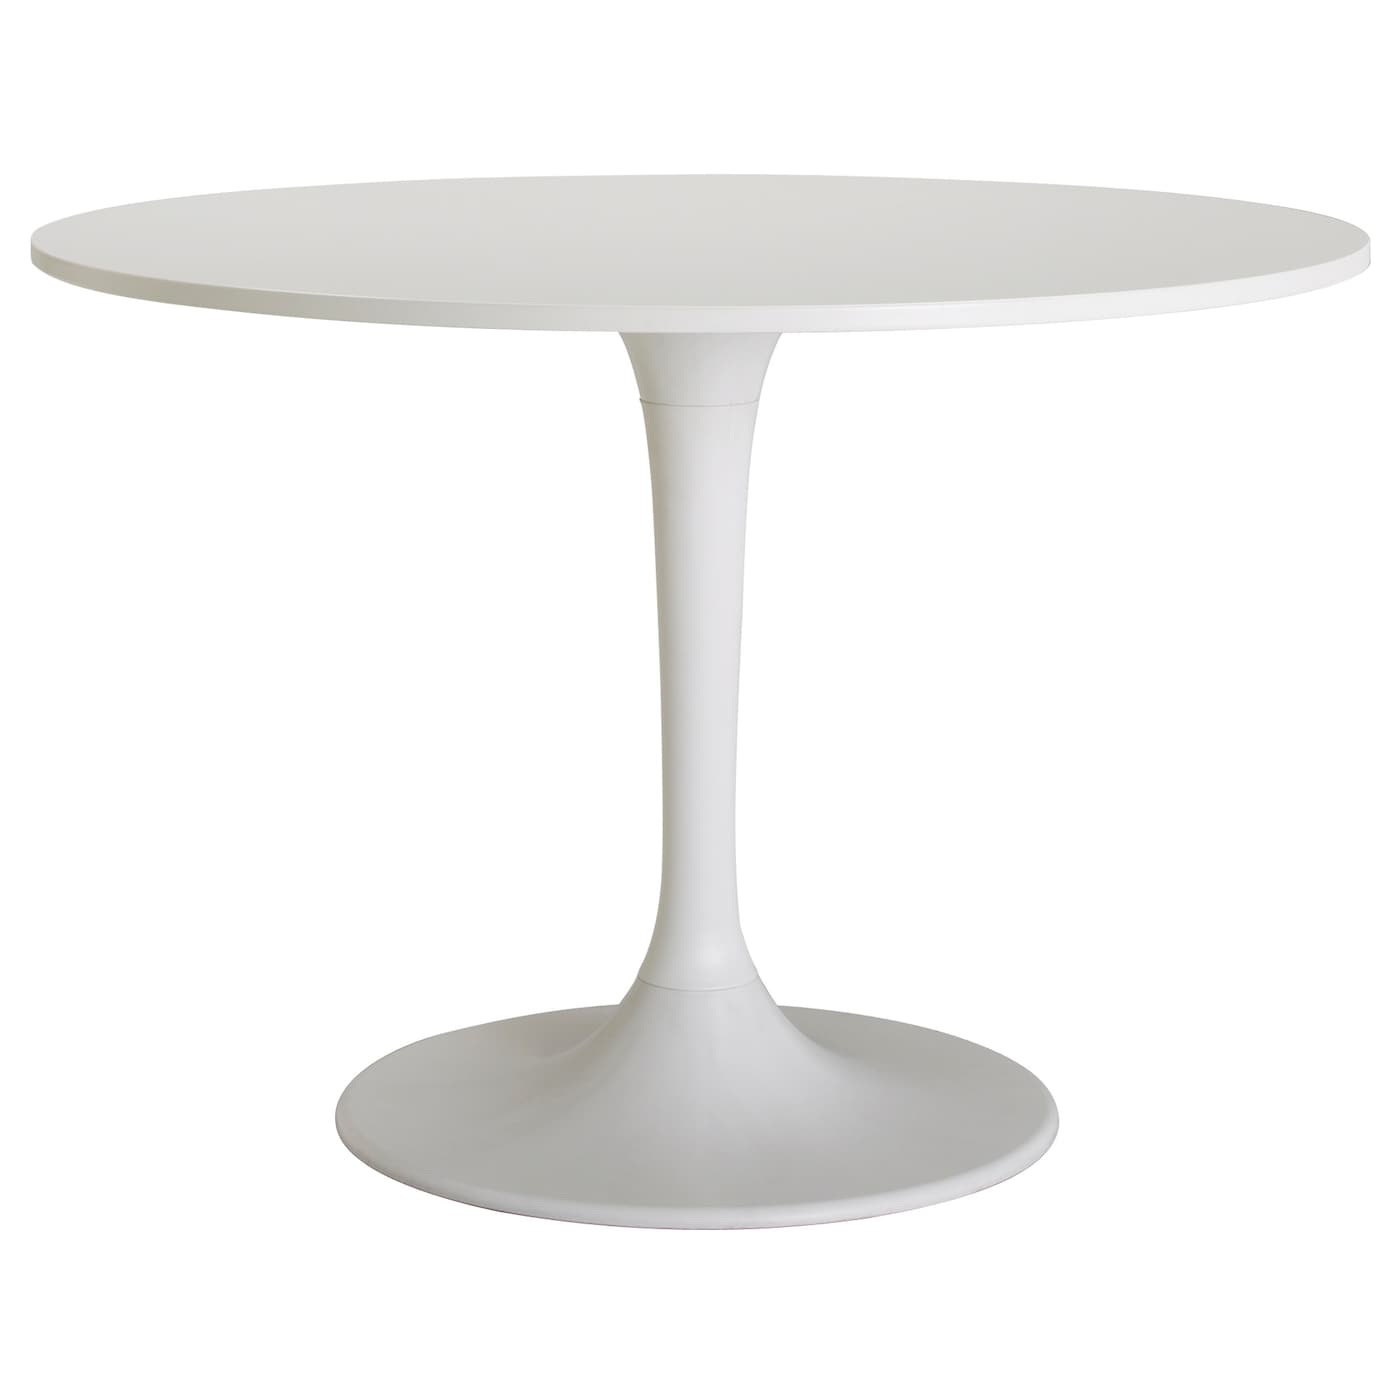 Docksta table white 105 cm ikea - Tables rondes avec rallonges ikea ...